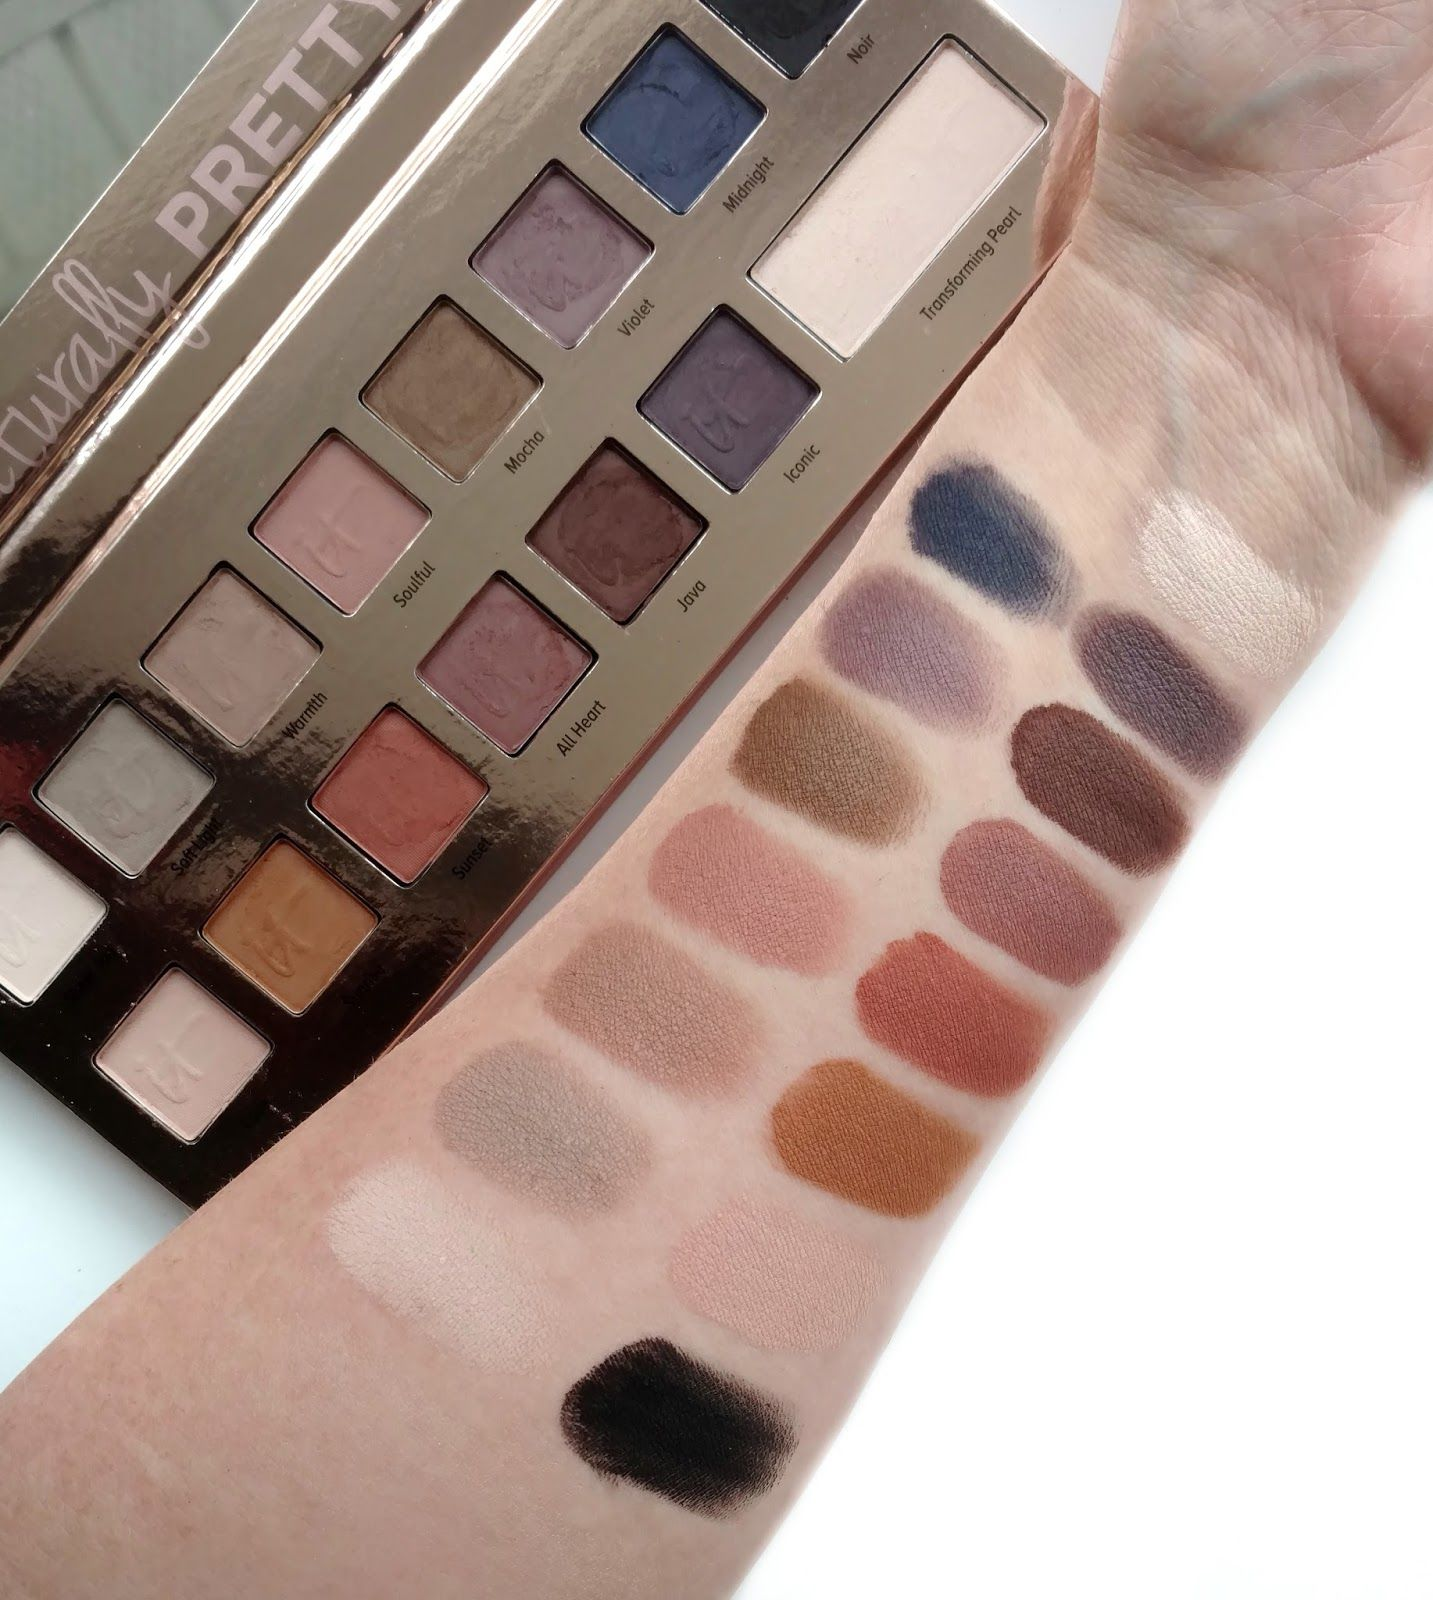 Naturally Pretty Matte Luxe Transforming Eyeshadow Palette by IT Cosmetics #6